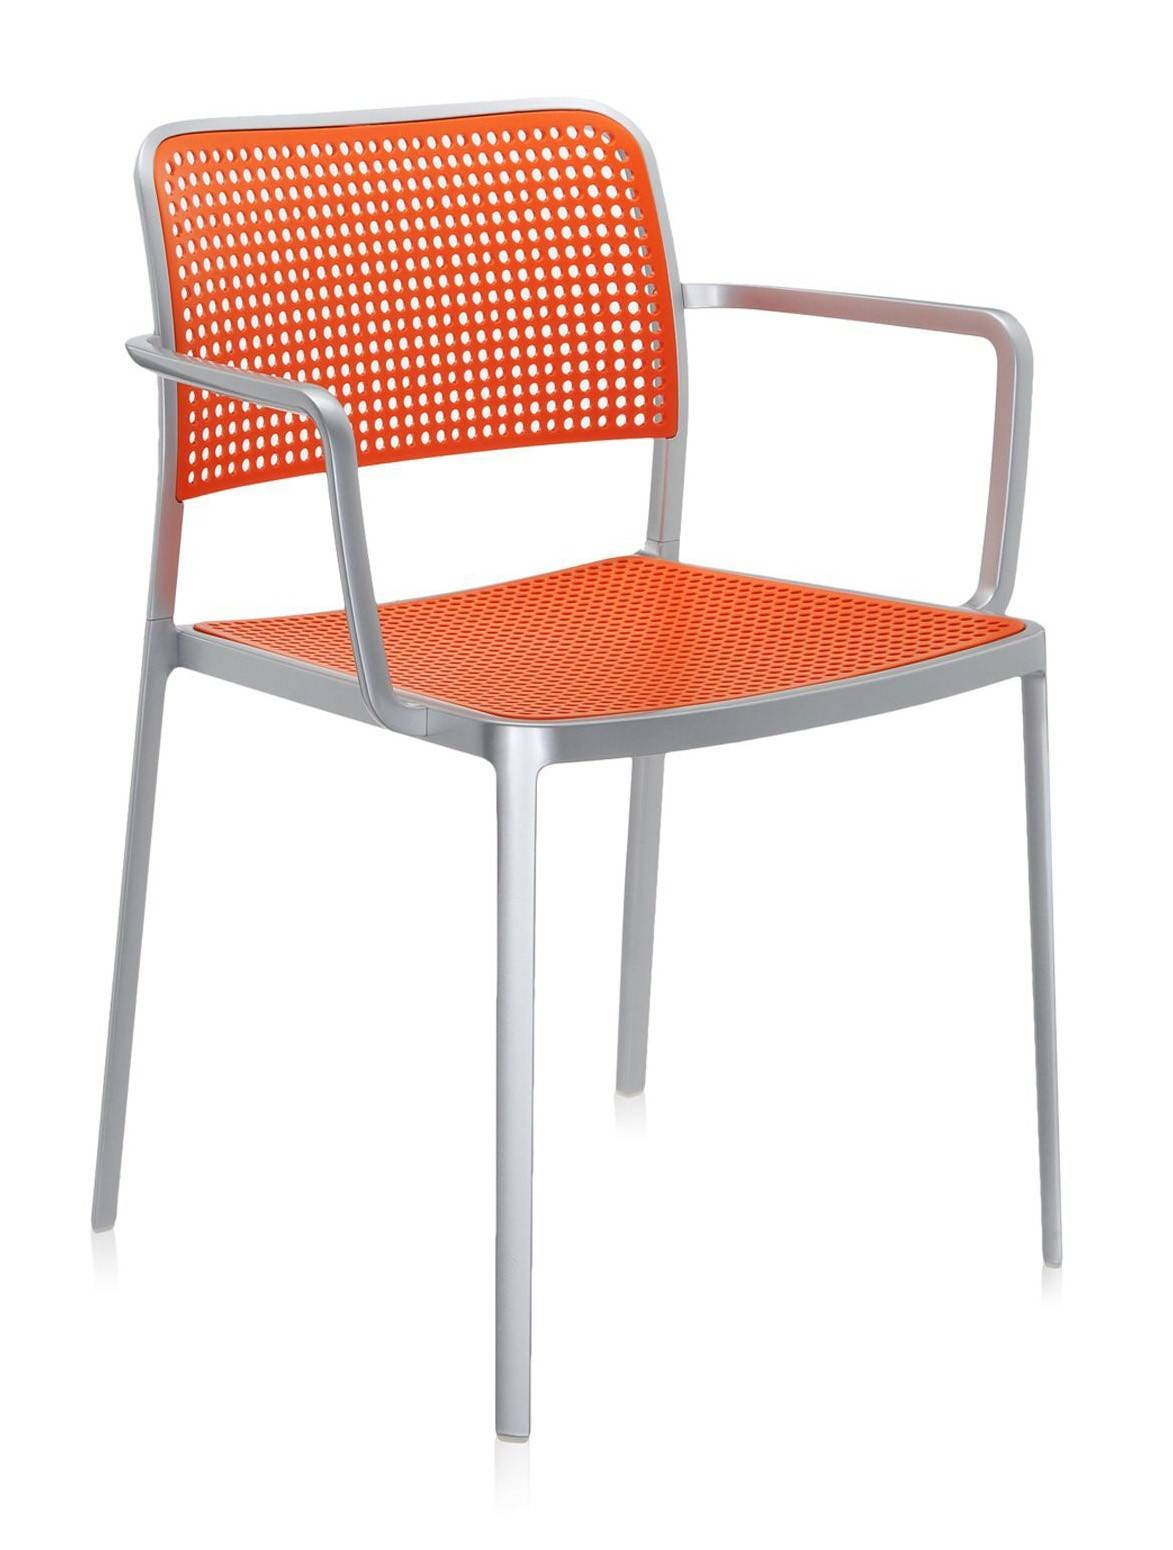 Kartell Audrey Shiny Chair (Priced Each, Sold In Sets Of 2)   GR ...